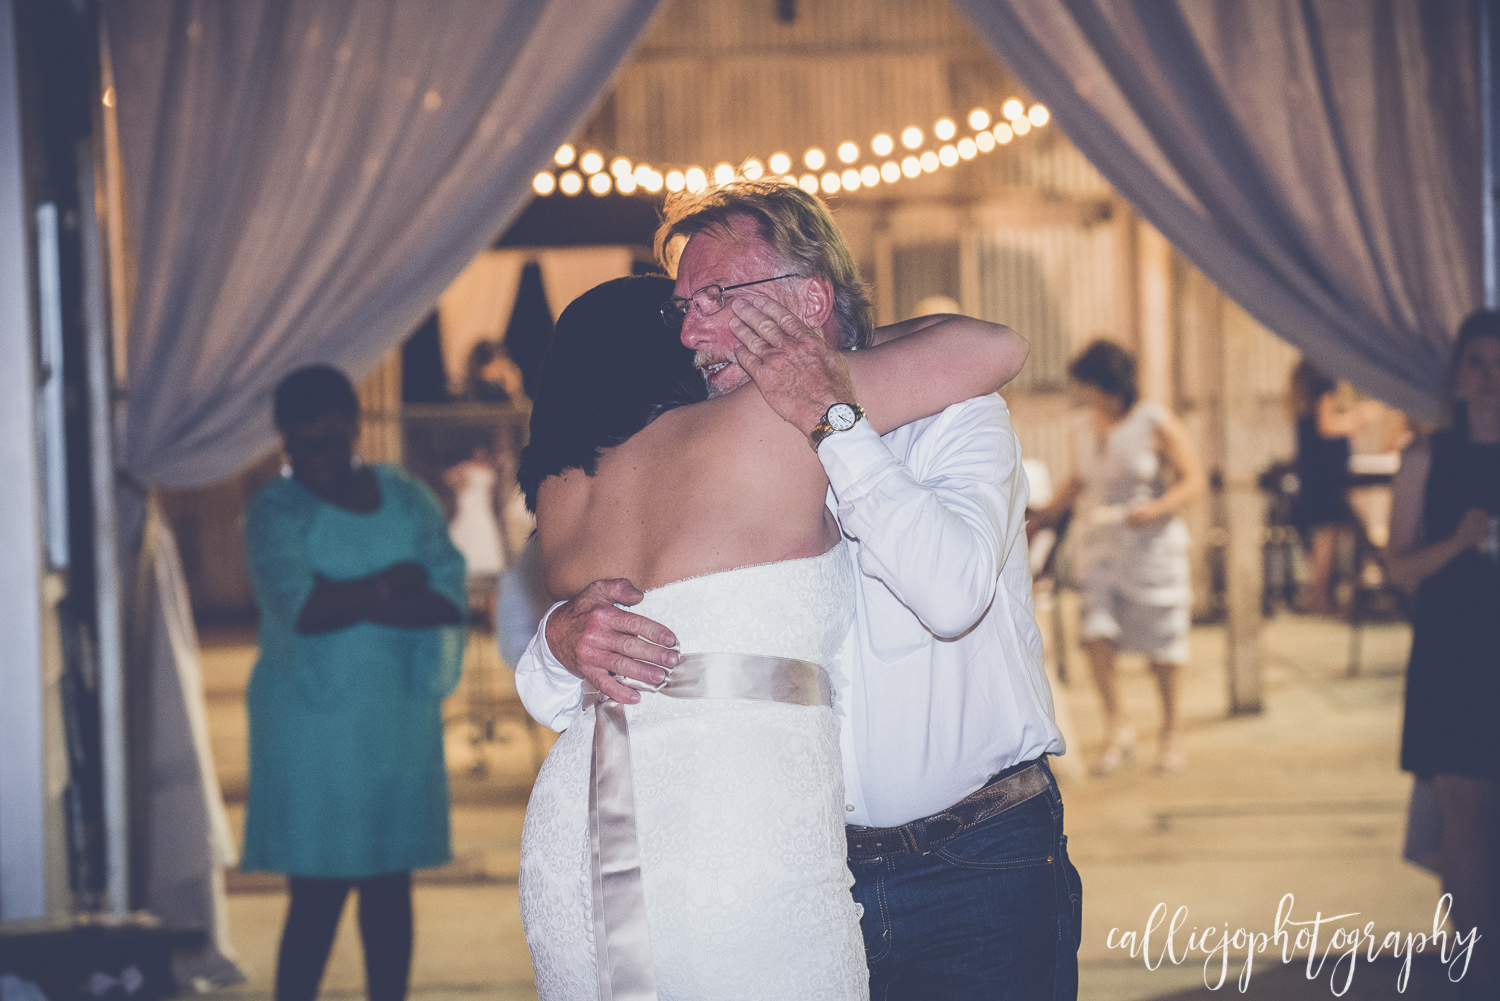 Being a daddy's girl, I had to share this shot from the Father/Daughter dance... Agh! Brings tears to my eyes all over again!